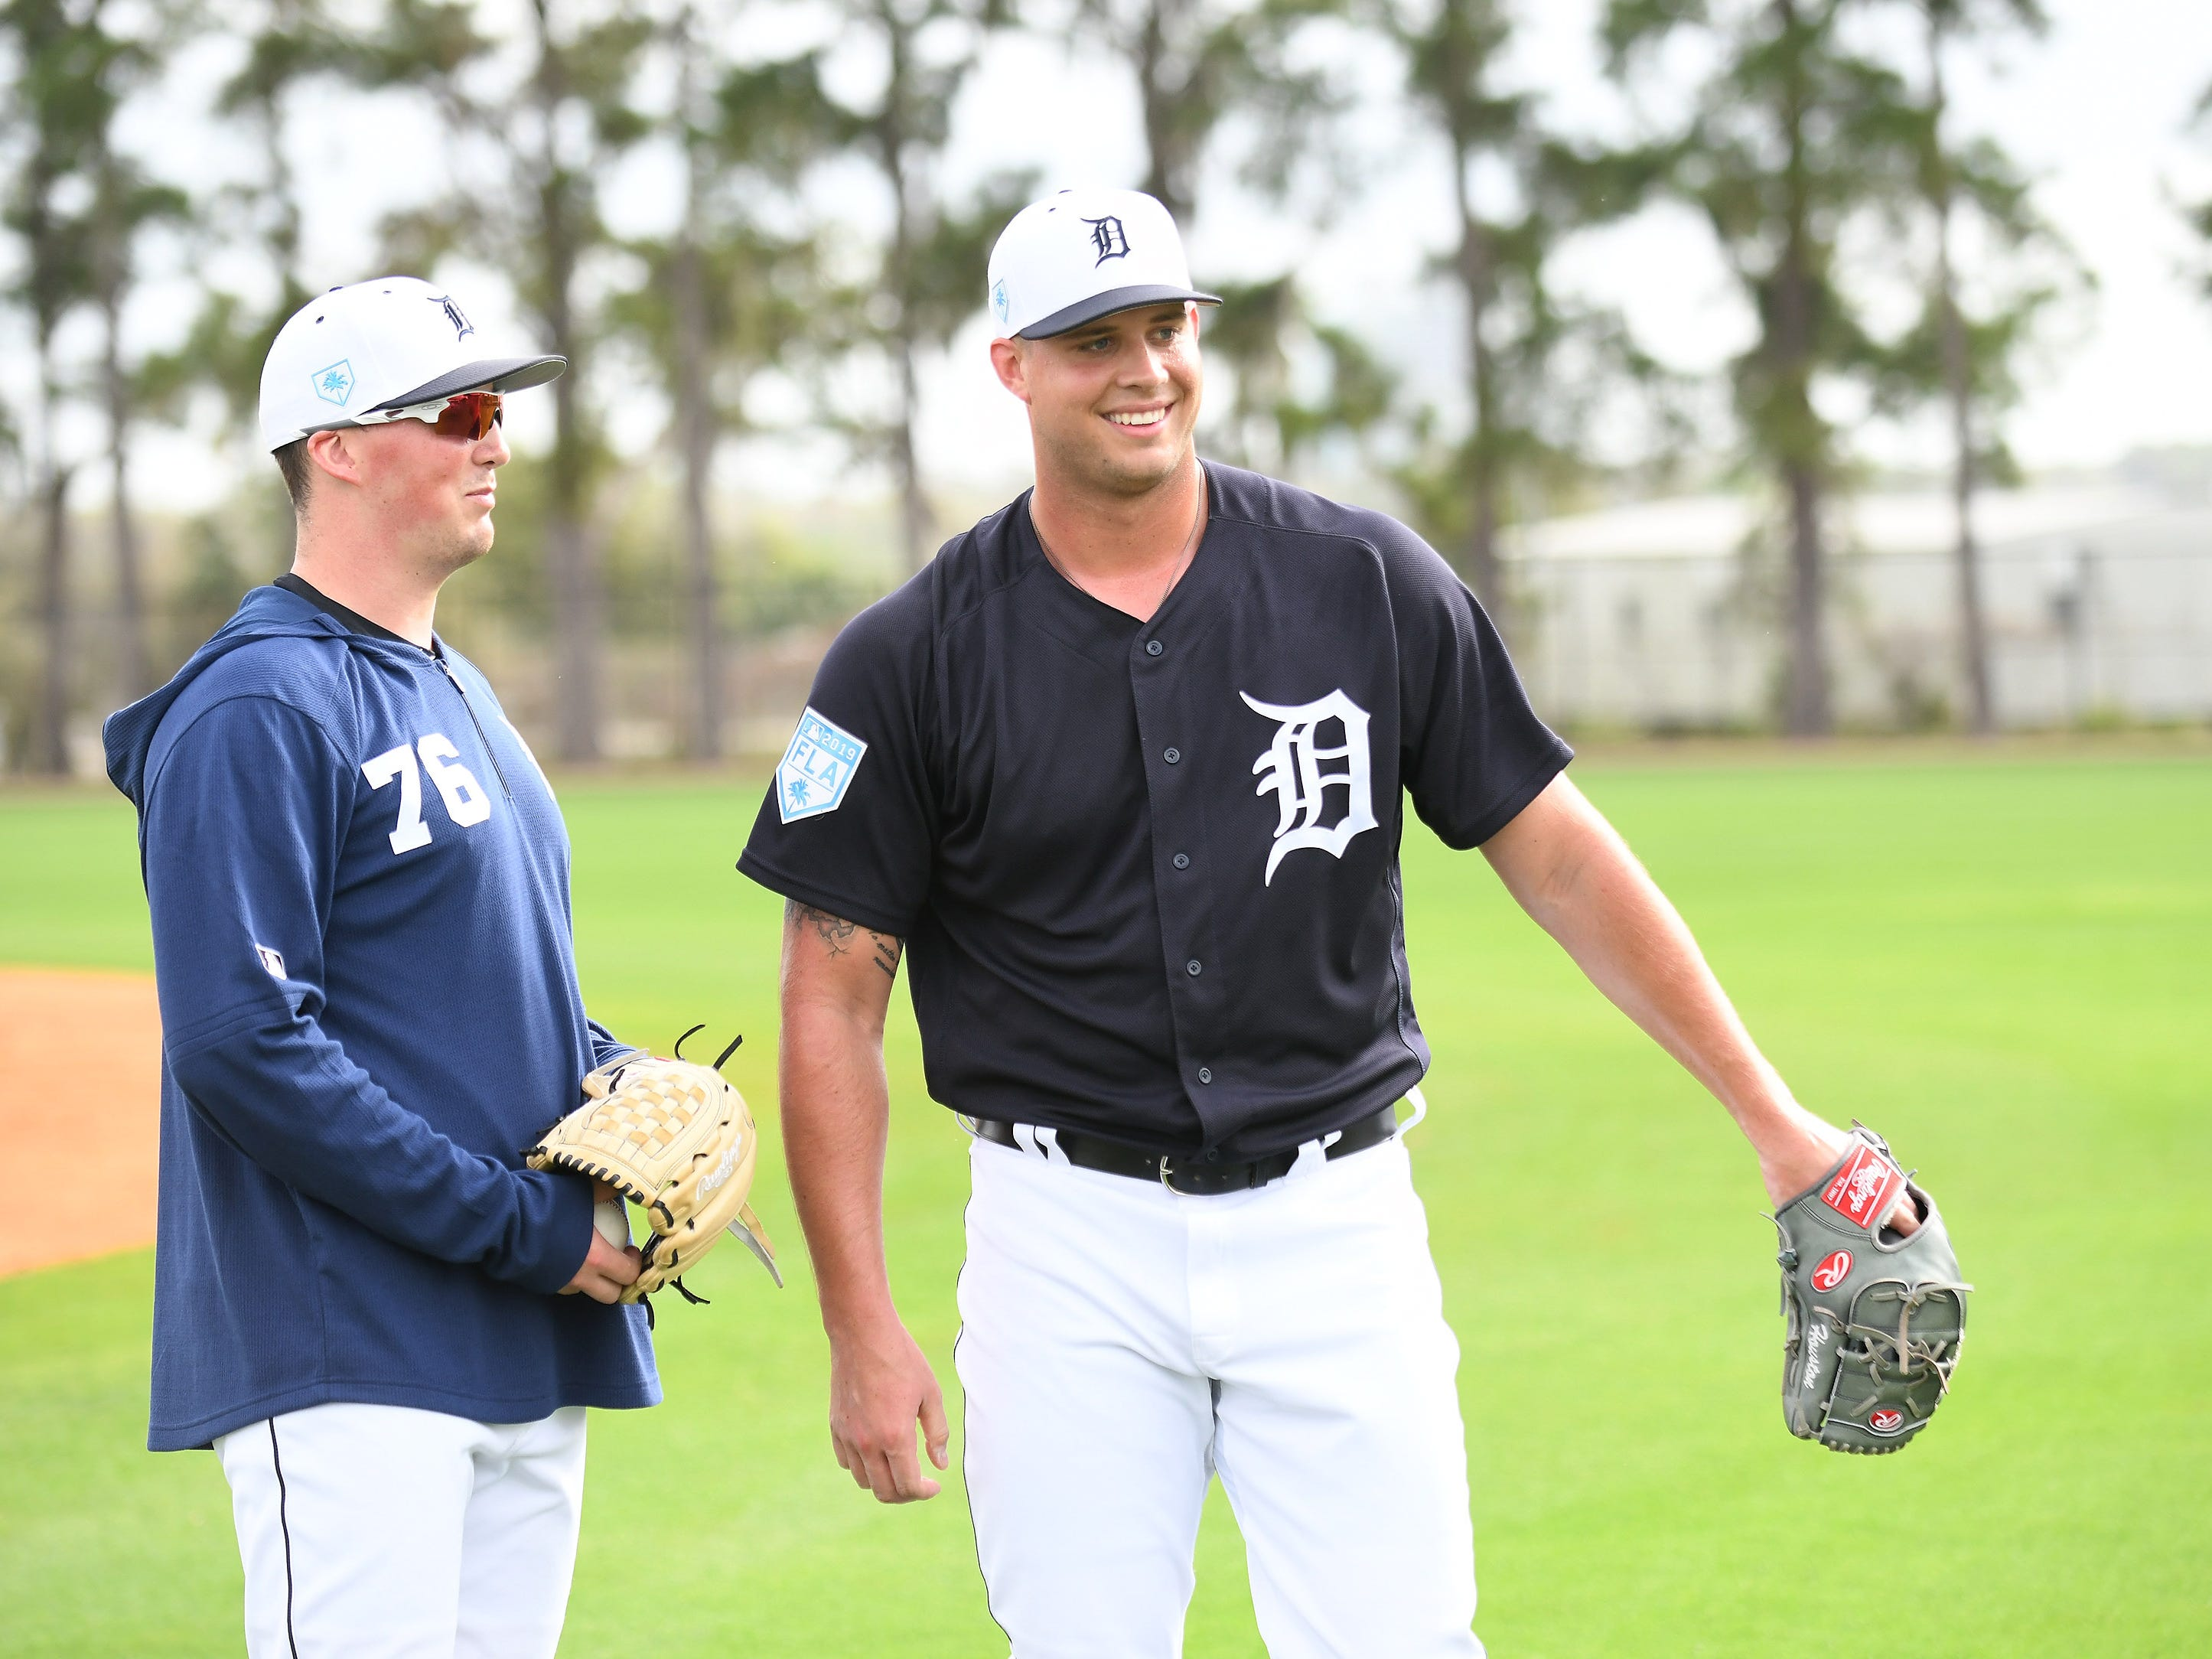 From left, Tigers pitching prospects in big league camp Kyle Funkhouser and Zac Houston, right, talk after warm-ups.